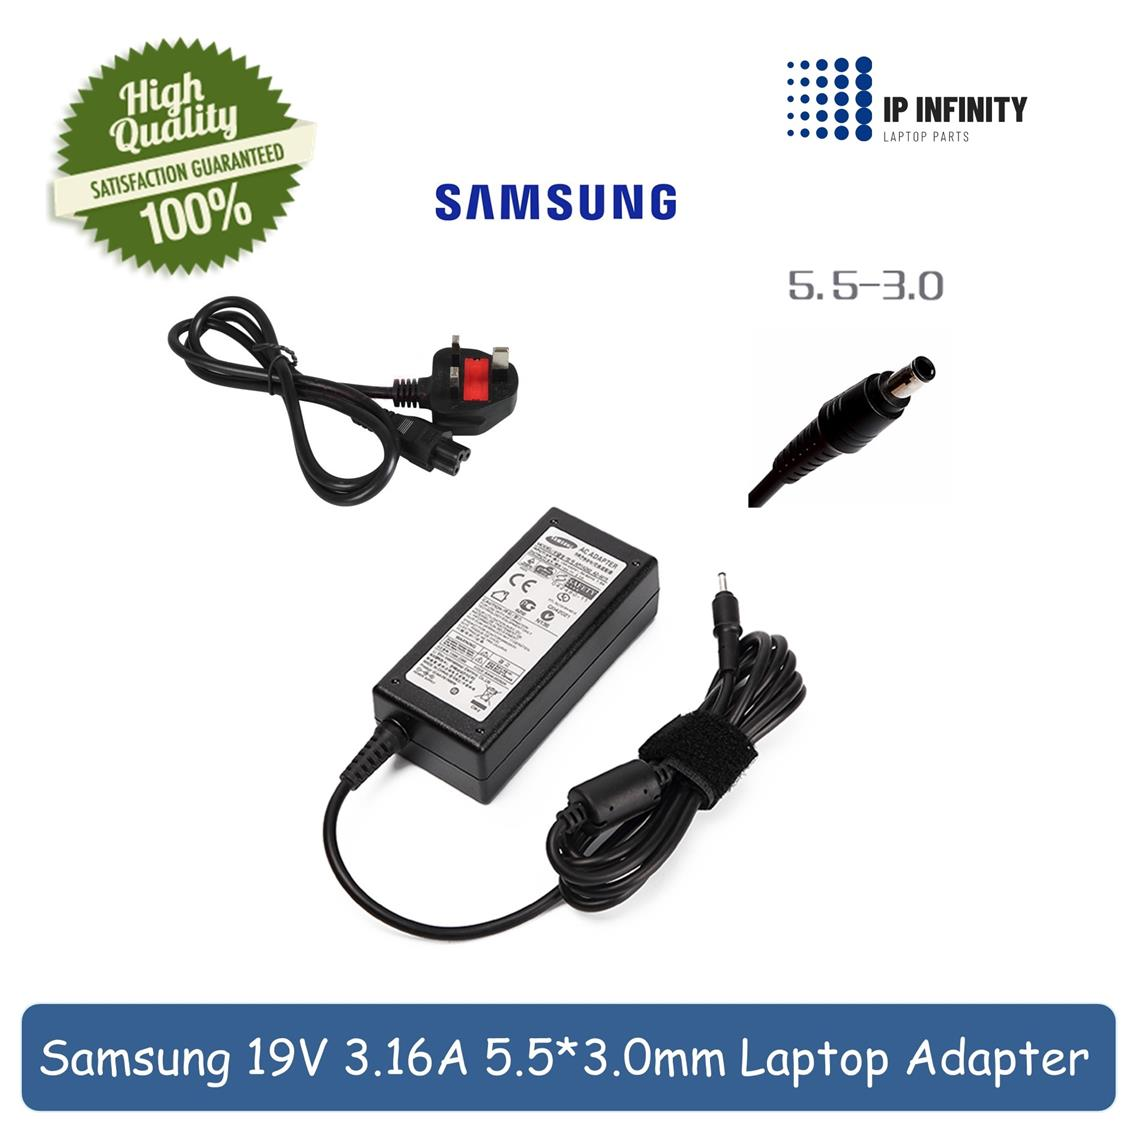 Samsung RV515 RV520 CPA09-004A PSCV600/04A Power Adapter Charger